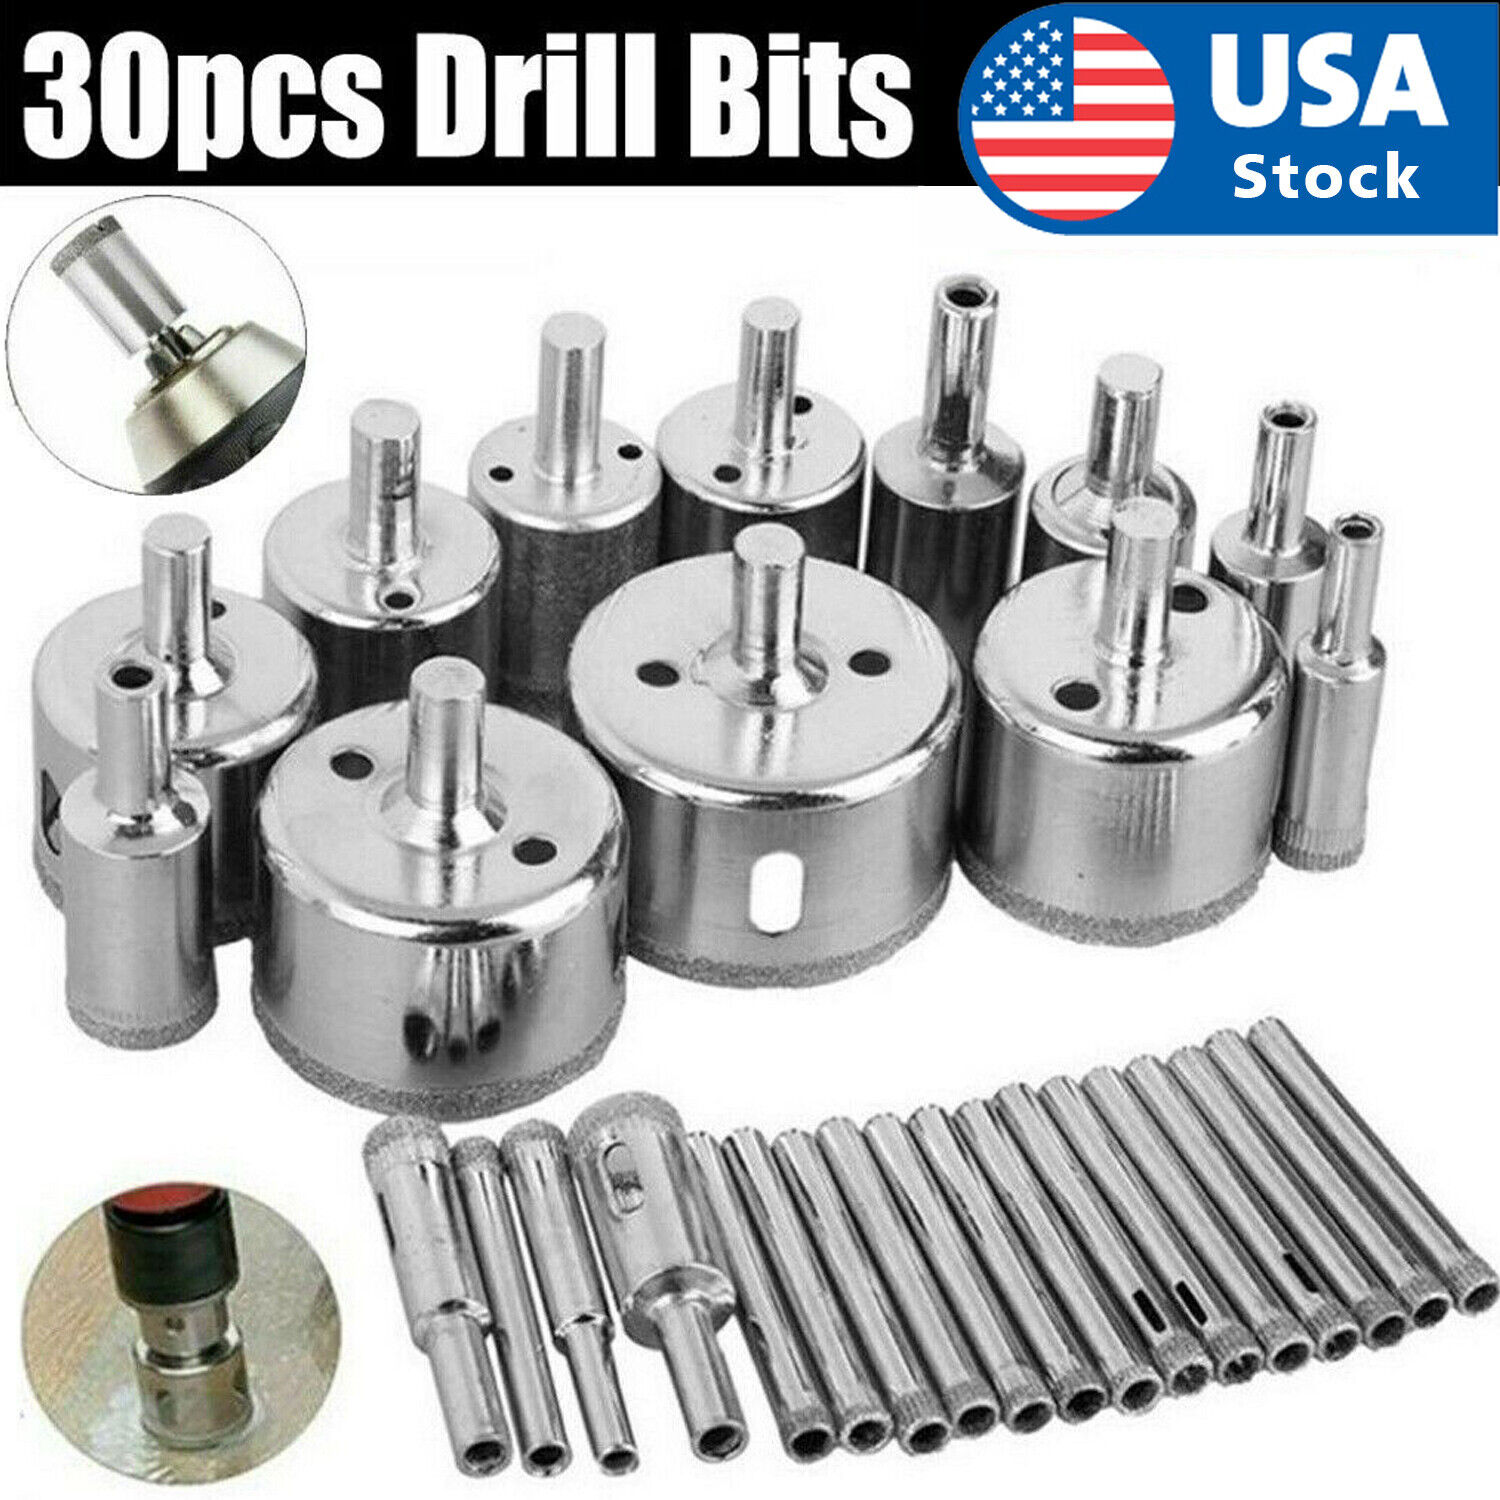 30pcs 6-50mm Diamond Core Hole Saw Drill Bits Tool Cutter For Tiles Marble Glass Drill Bits